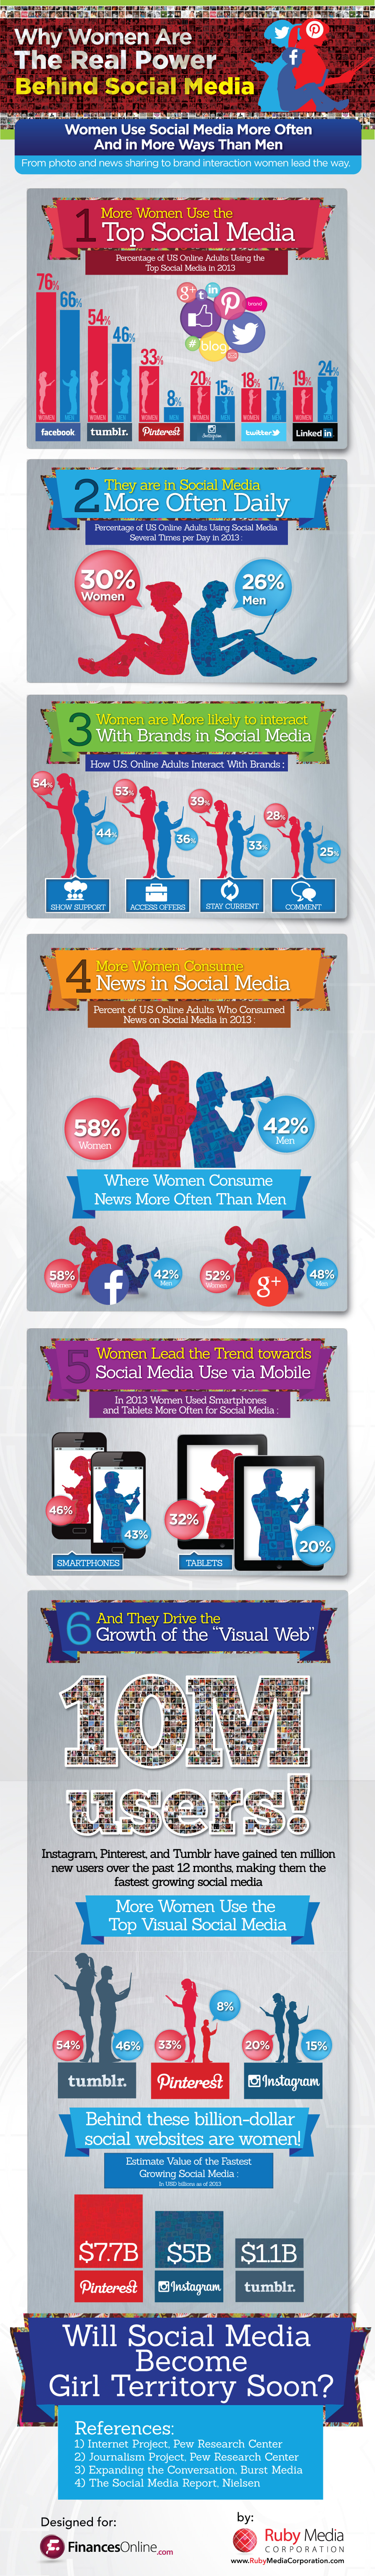 Facebook, Pinterest And Other Social Media Statistics Say Much About The Influence Of Women